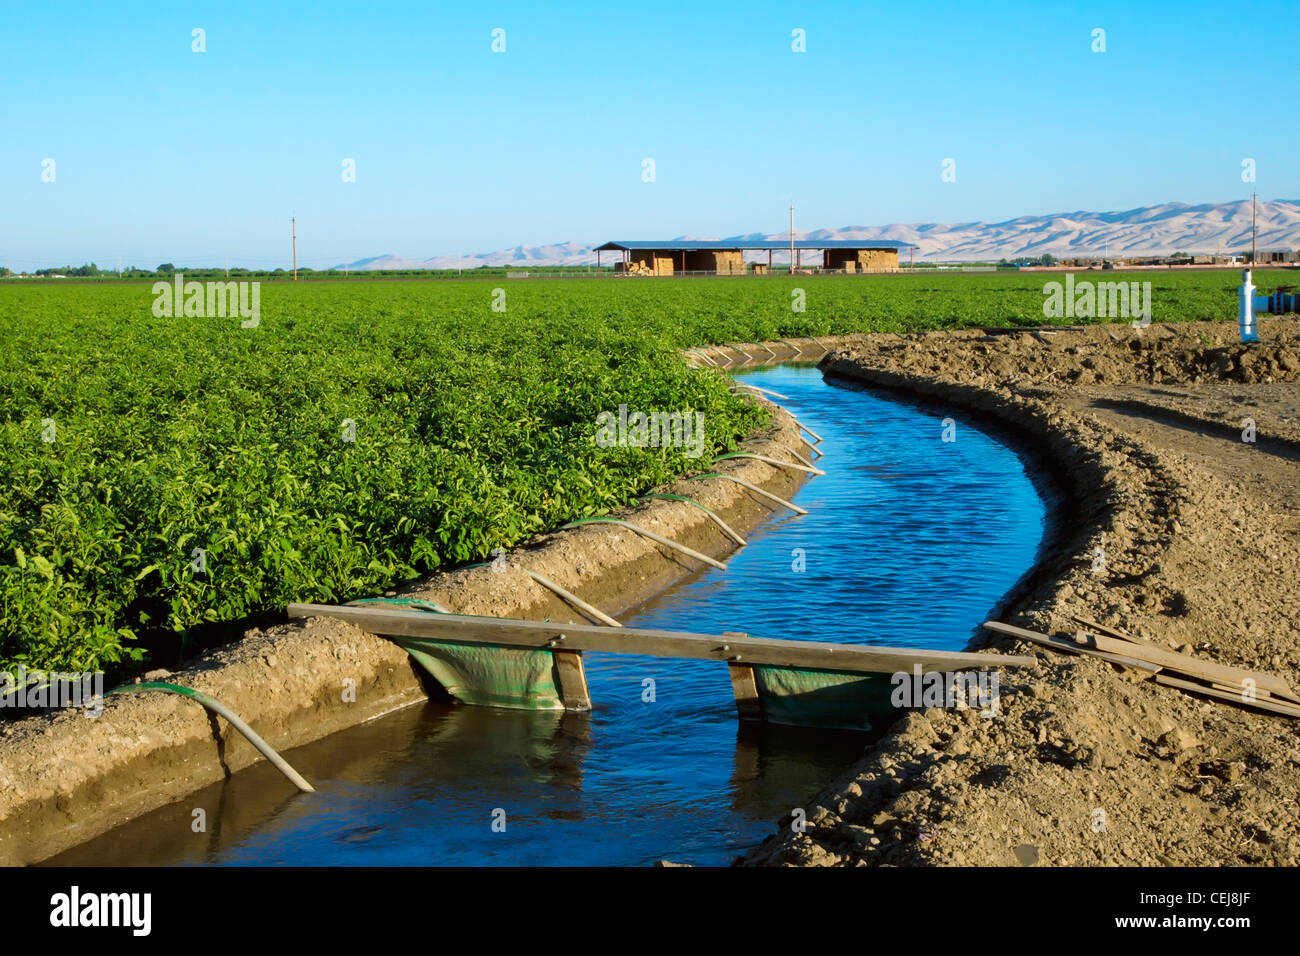 Agriculture - Irrigation canal running alongside a fresh market tomato field that is being irrigated utilizing siphon - Stock Image